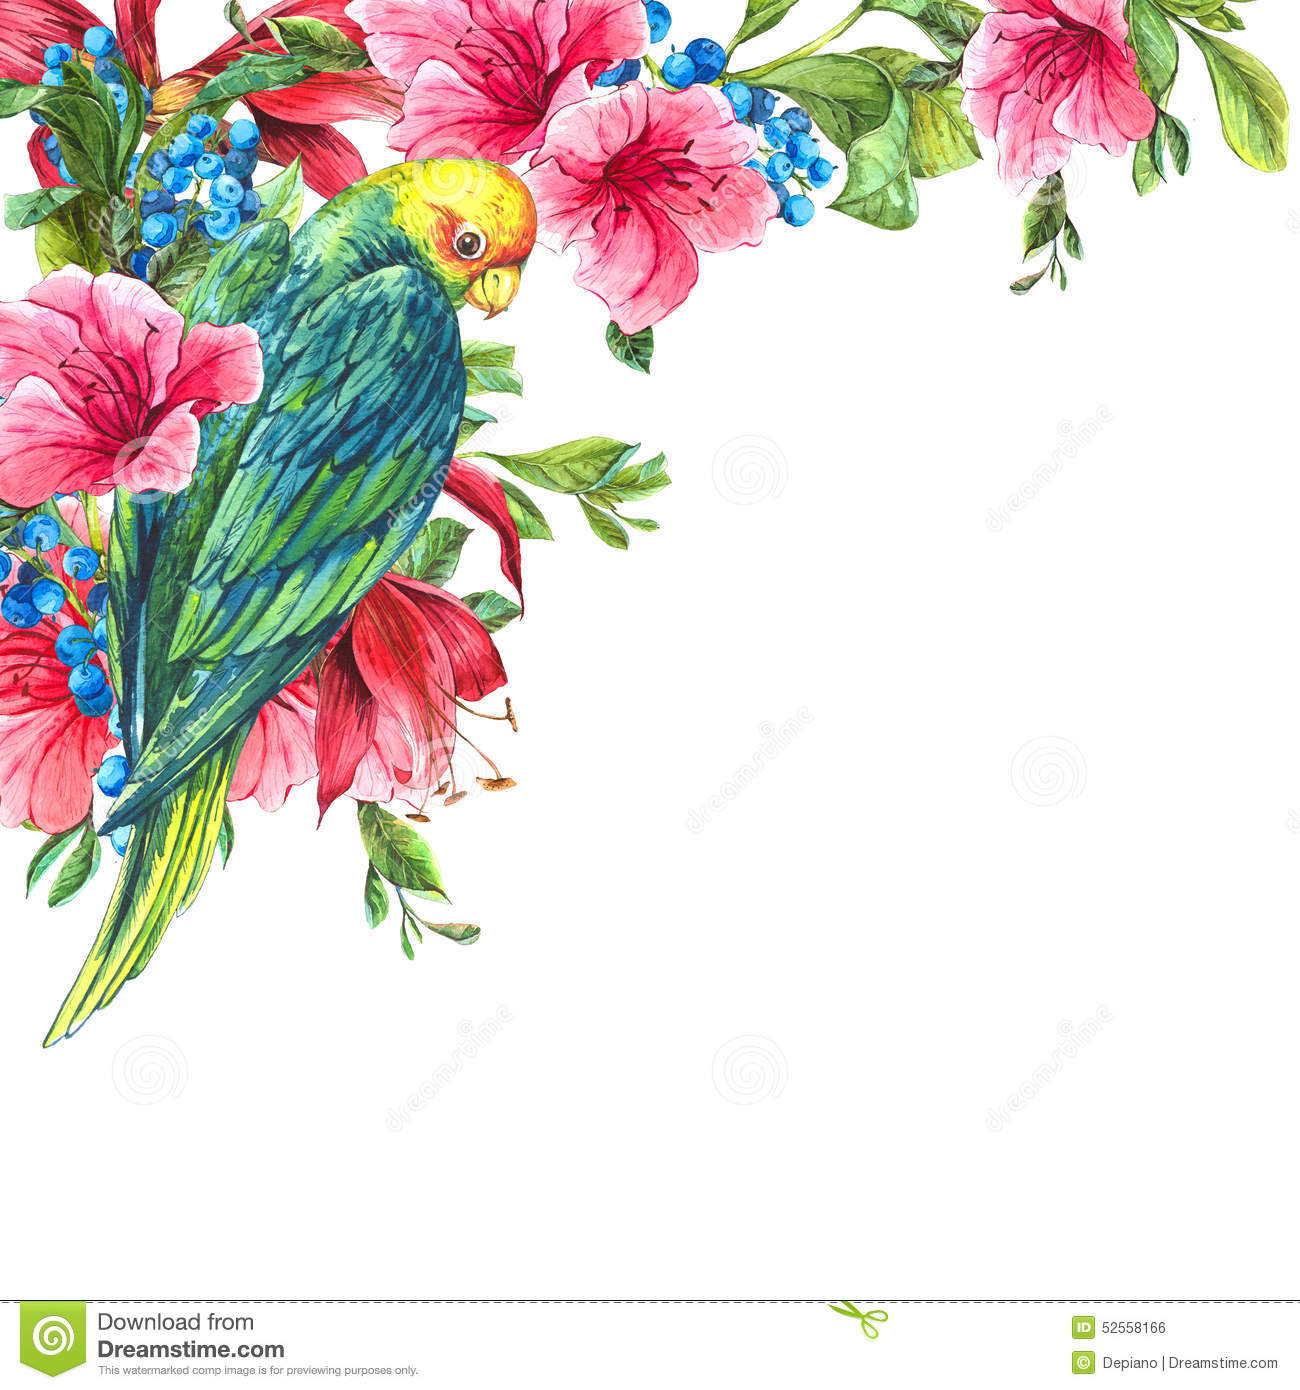 Animal Print Wallpaper Border Exotic Vintage Card With Tropical Flowers Parrots Stock